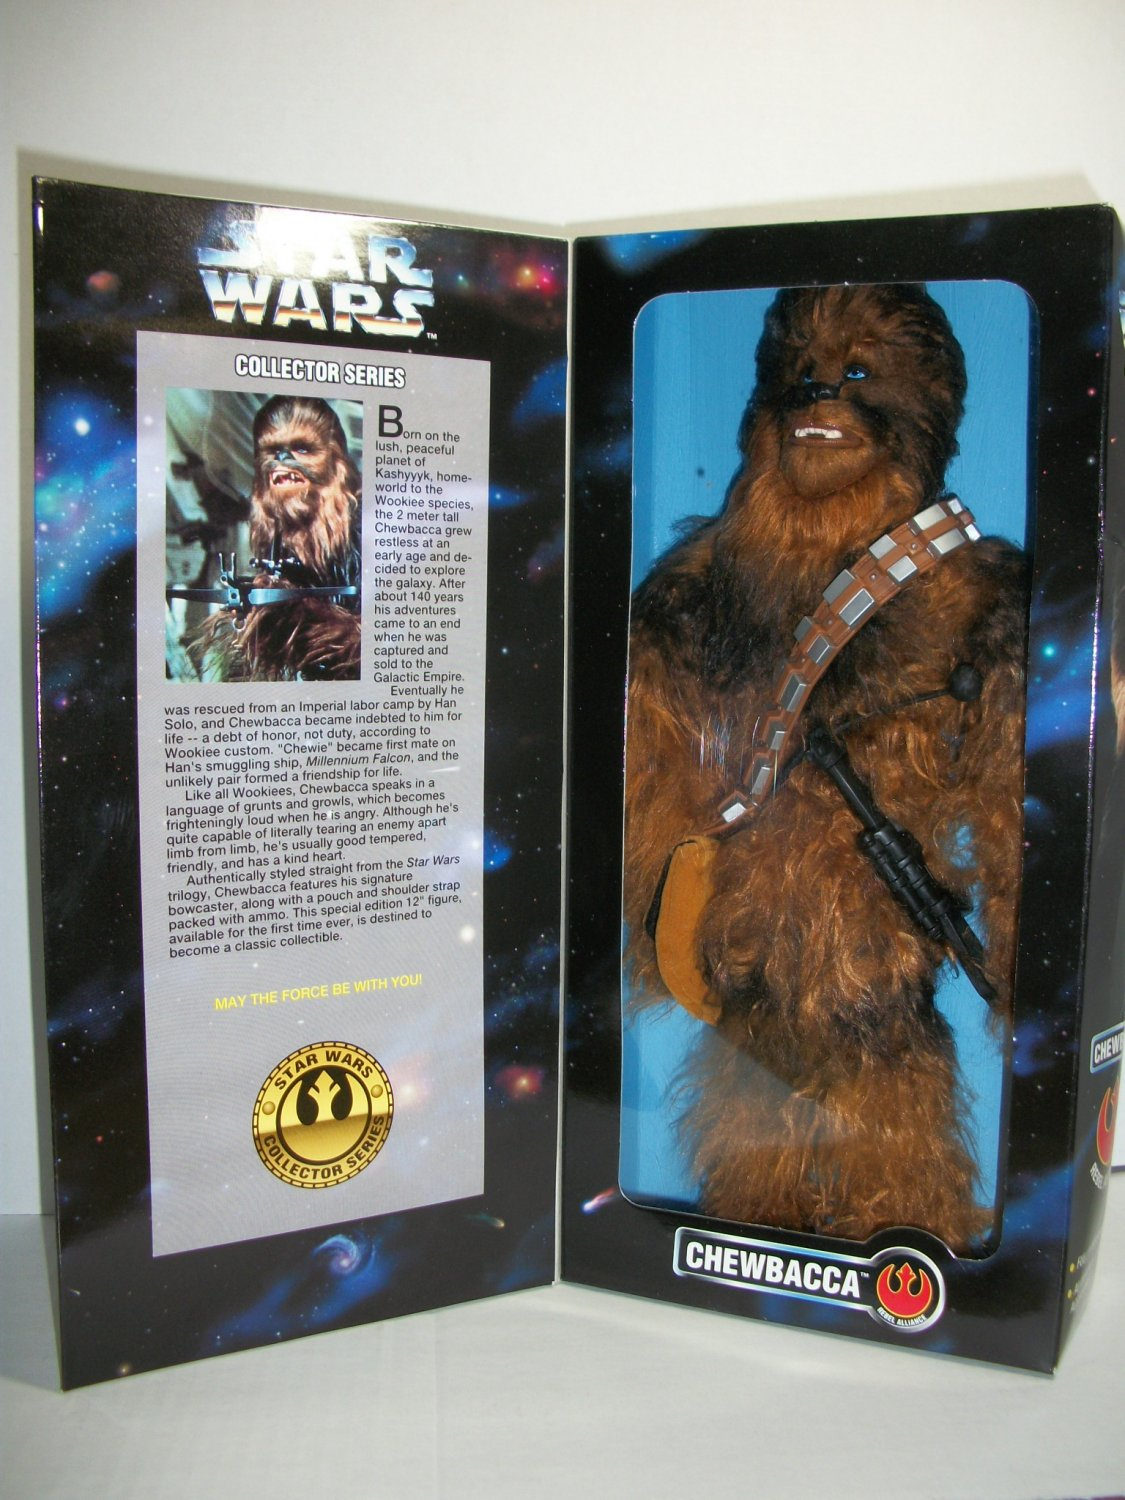 Star Wars 12 Inch Chewbacca Action Figure